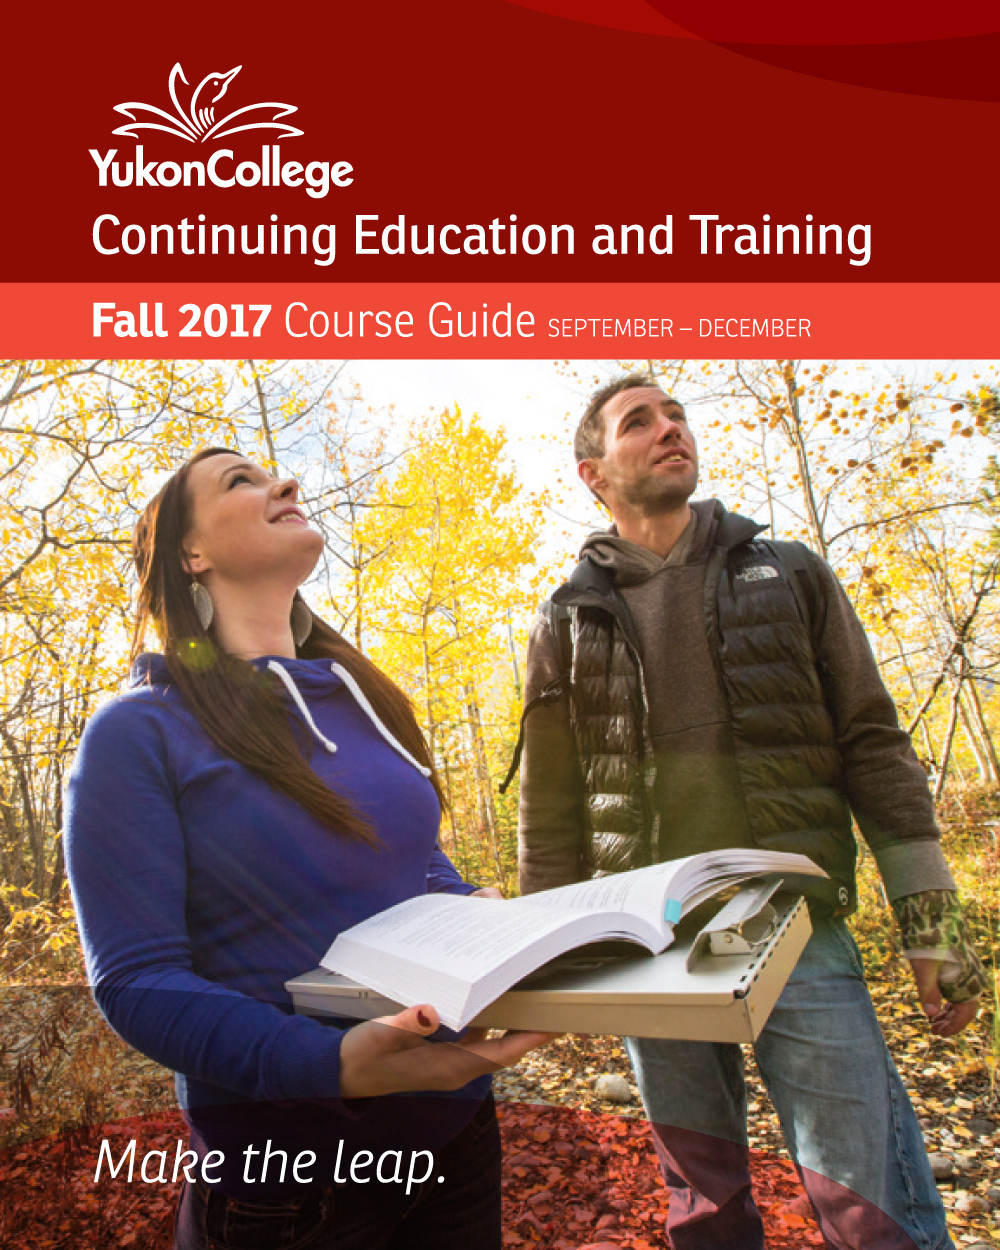 Click here to view the Fall 2017 Continuing Education and Training Guide